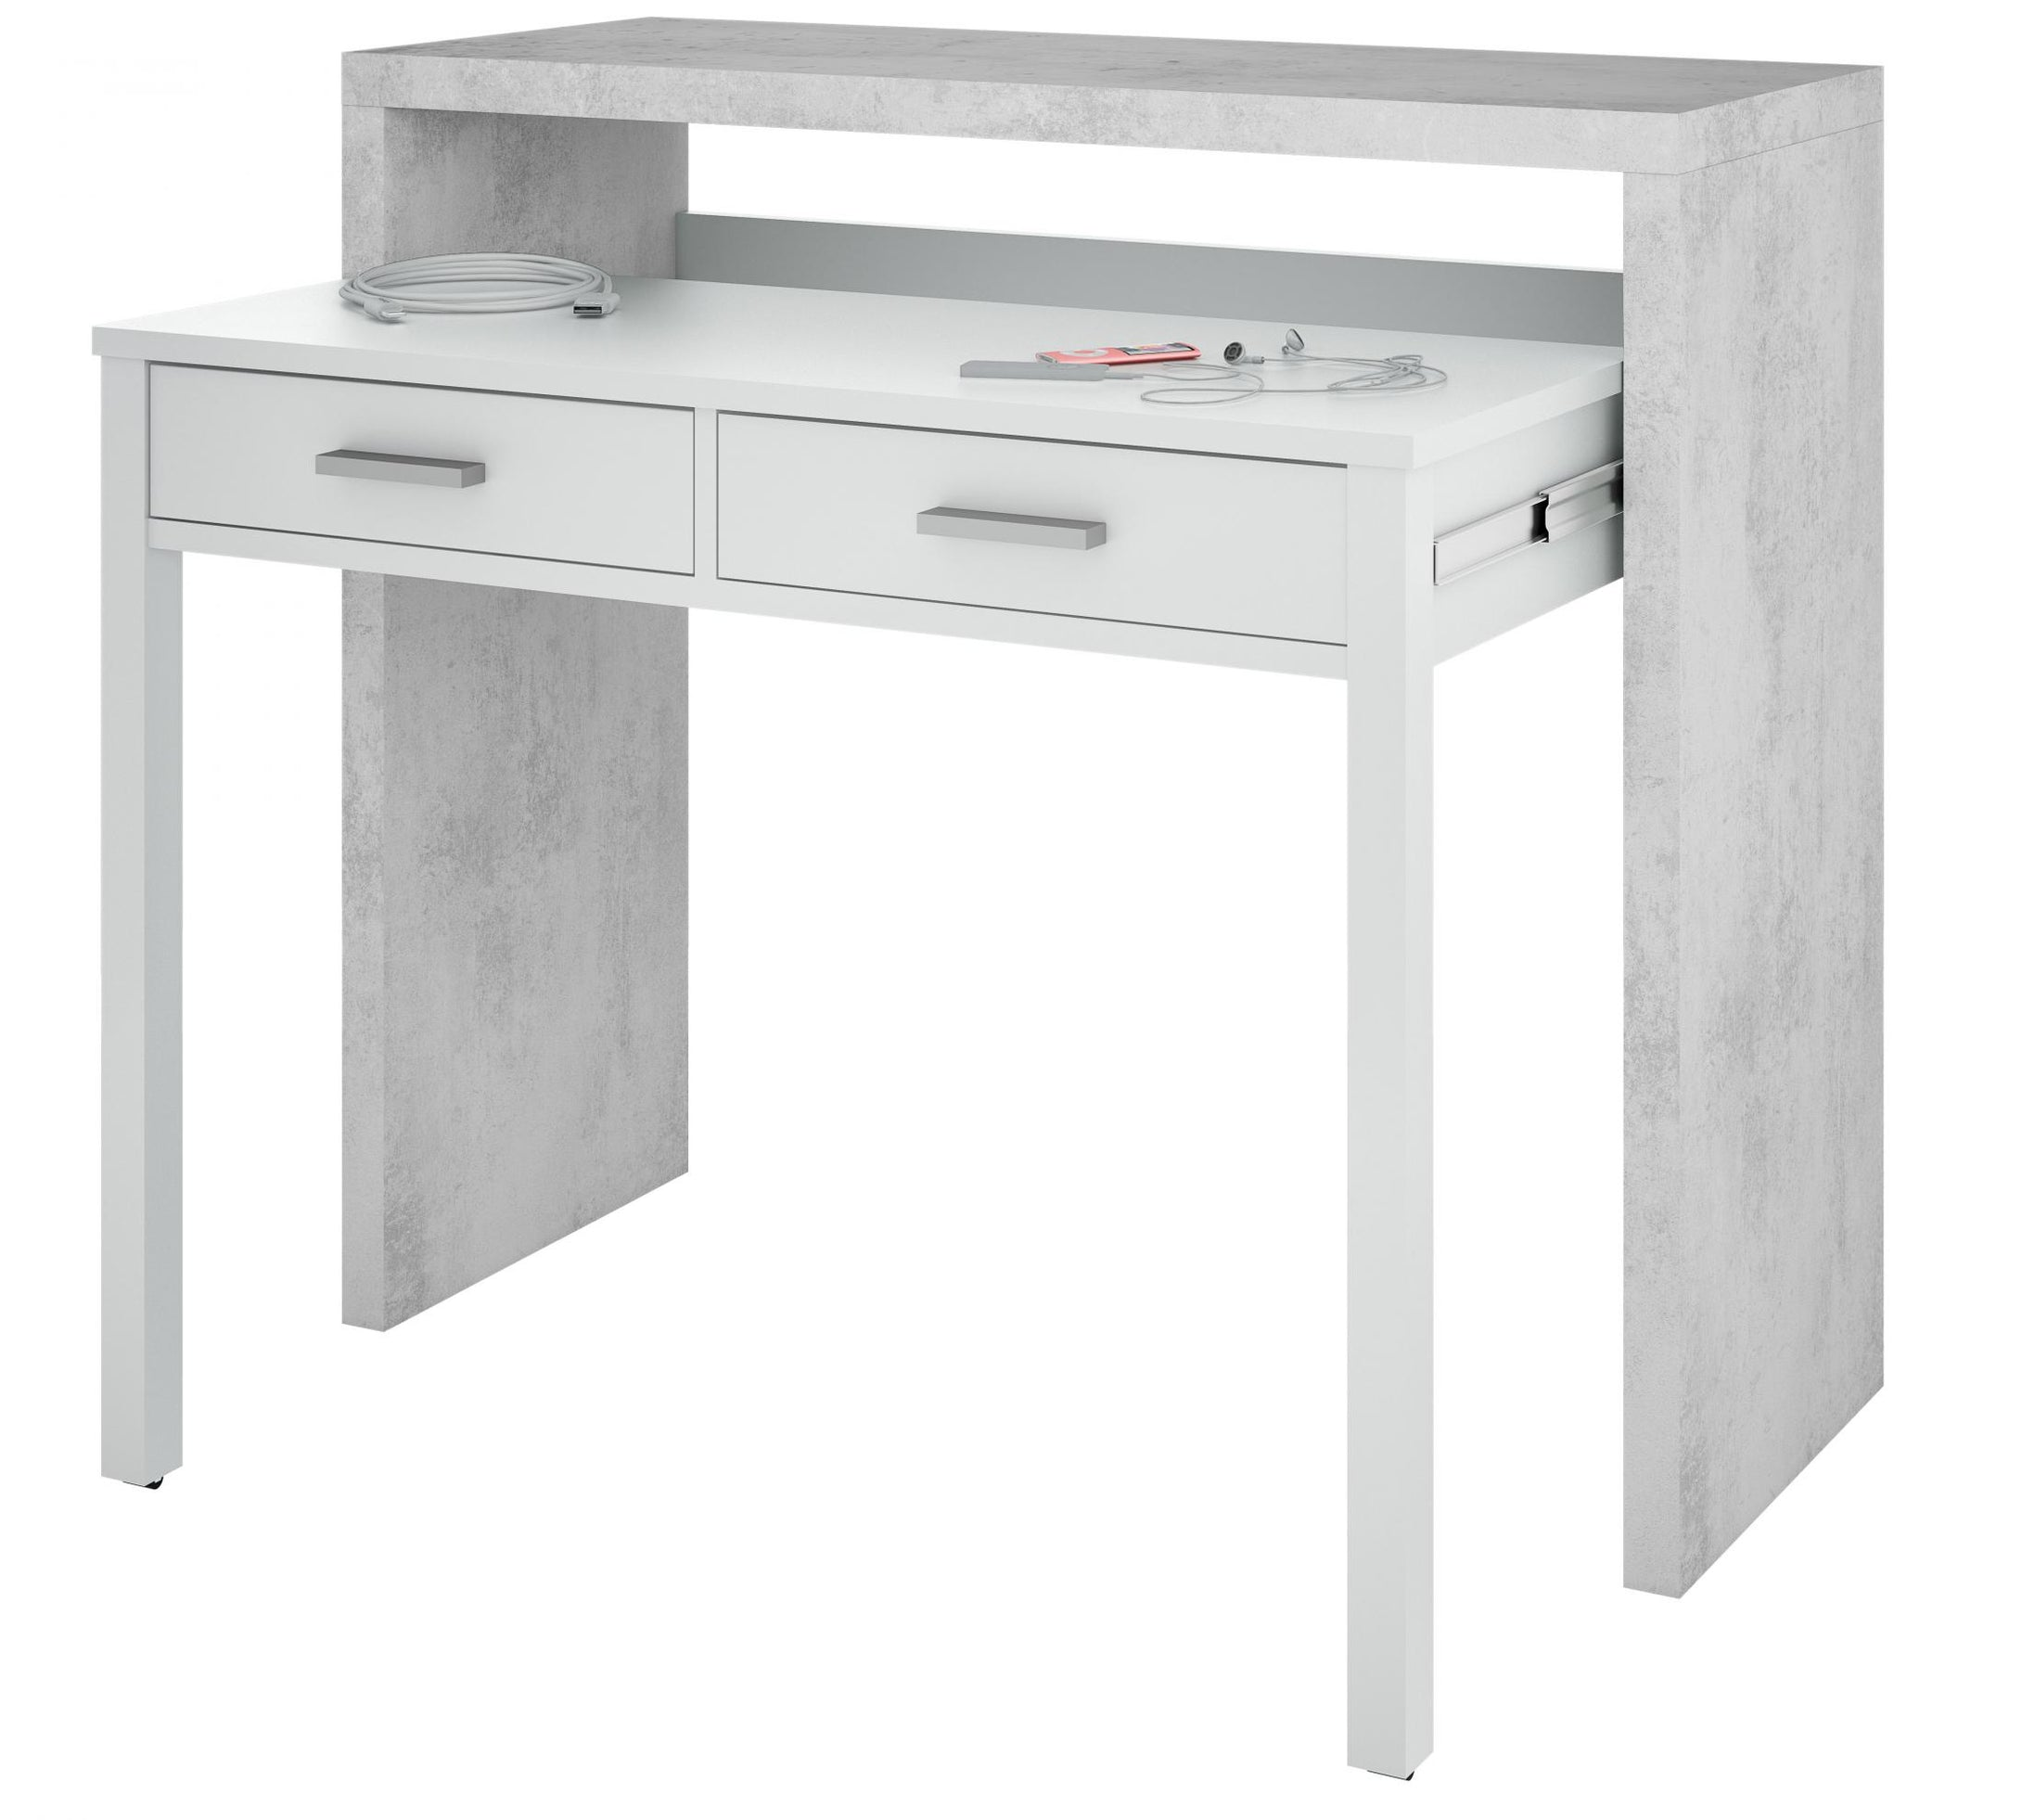 Epping Desk Pull Out White & Concrete 0L4582A